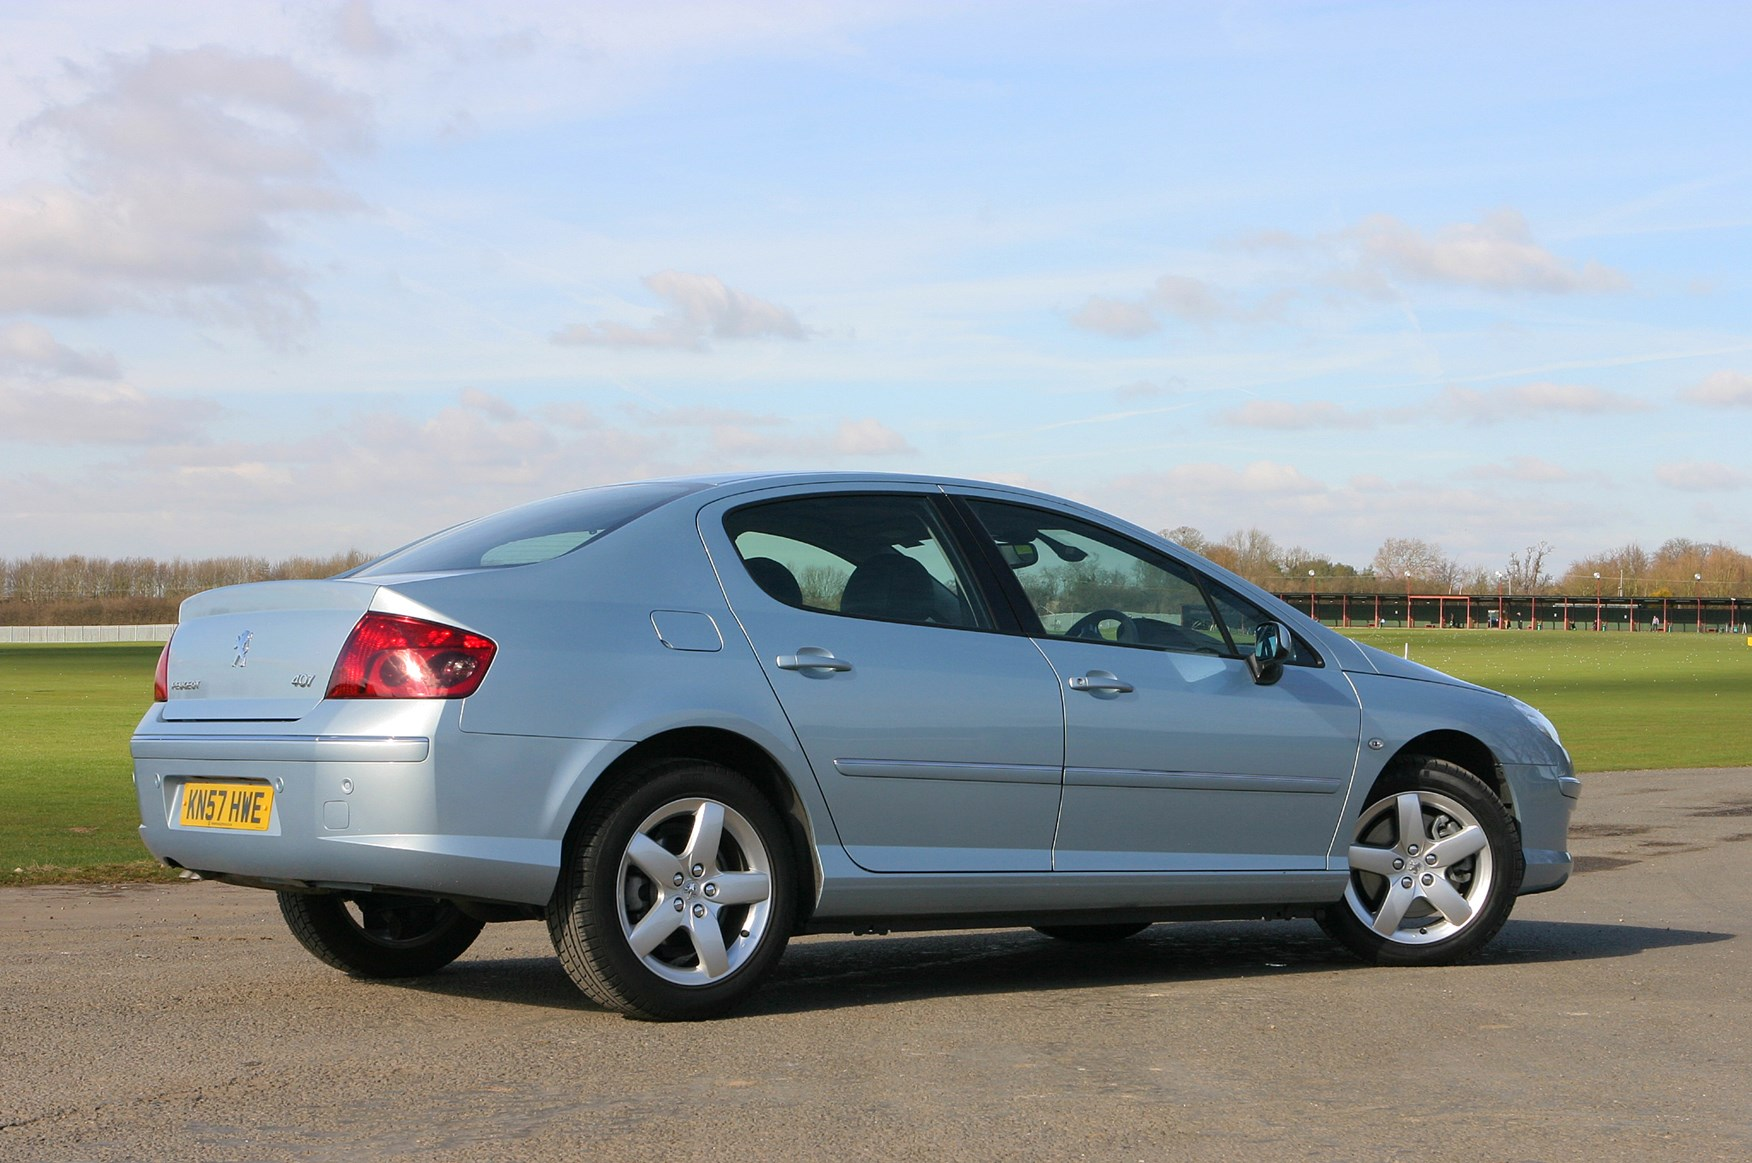 Peugeot 407 2004 - 2011 Coupe #1